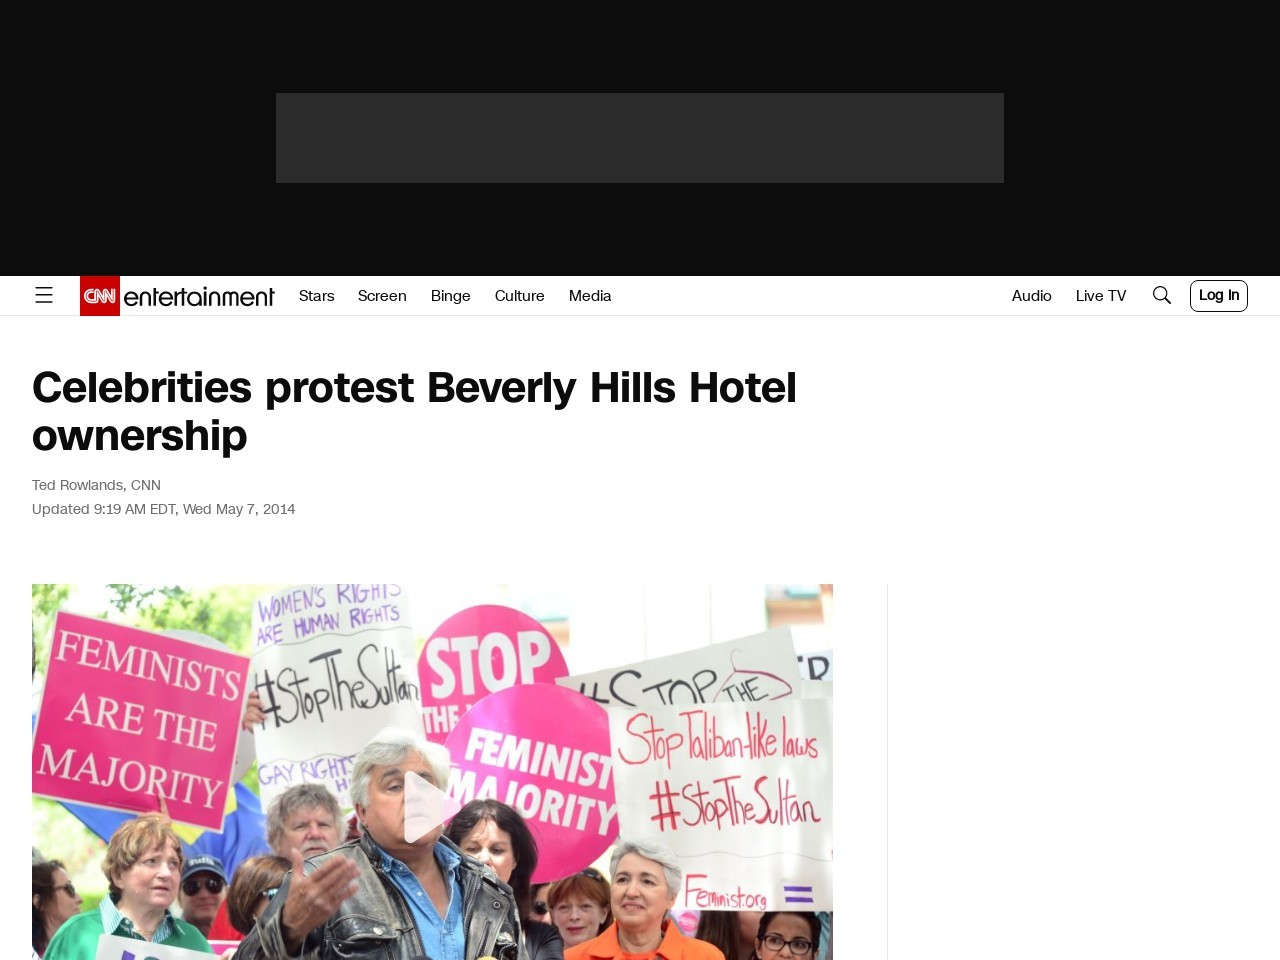 Celebrities protest Beverly Hills Hotel ownership